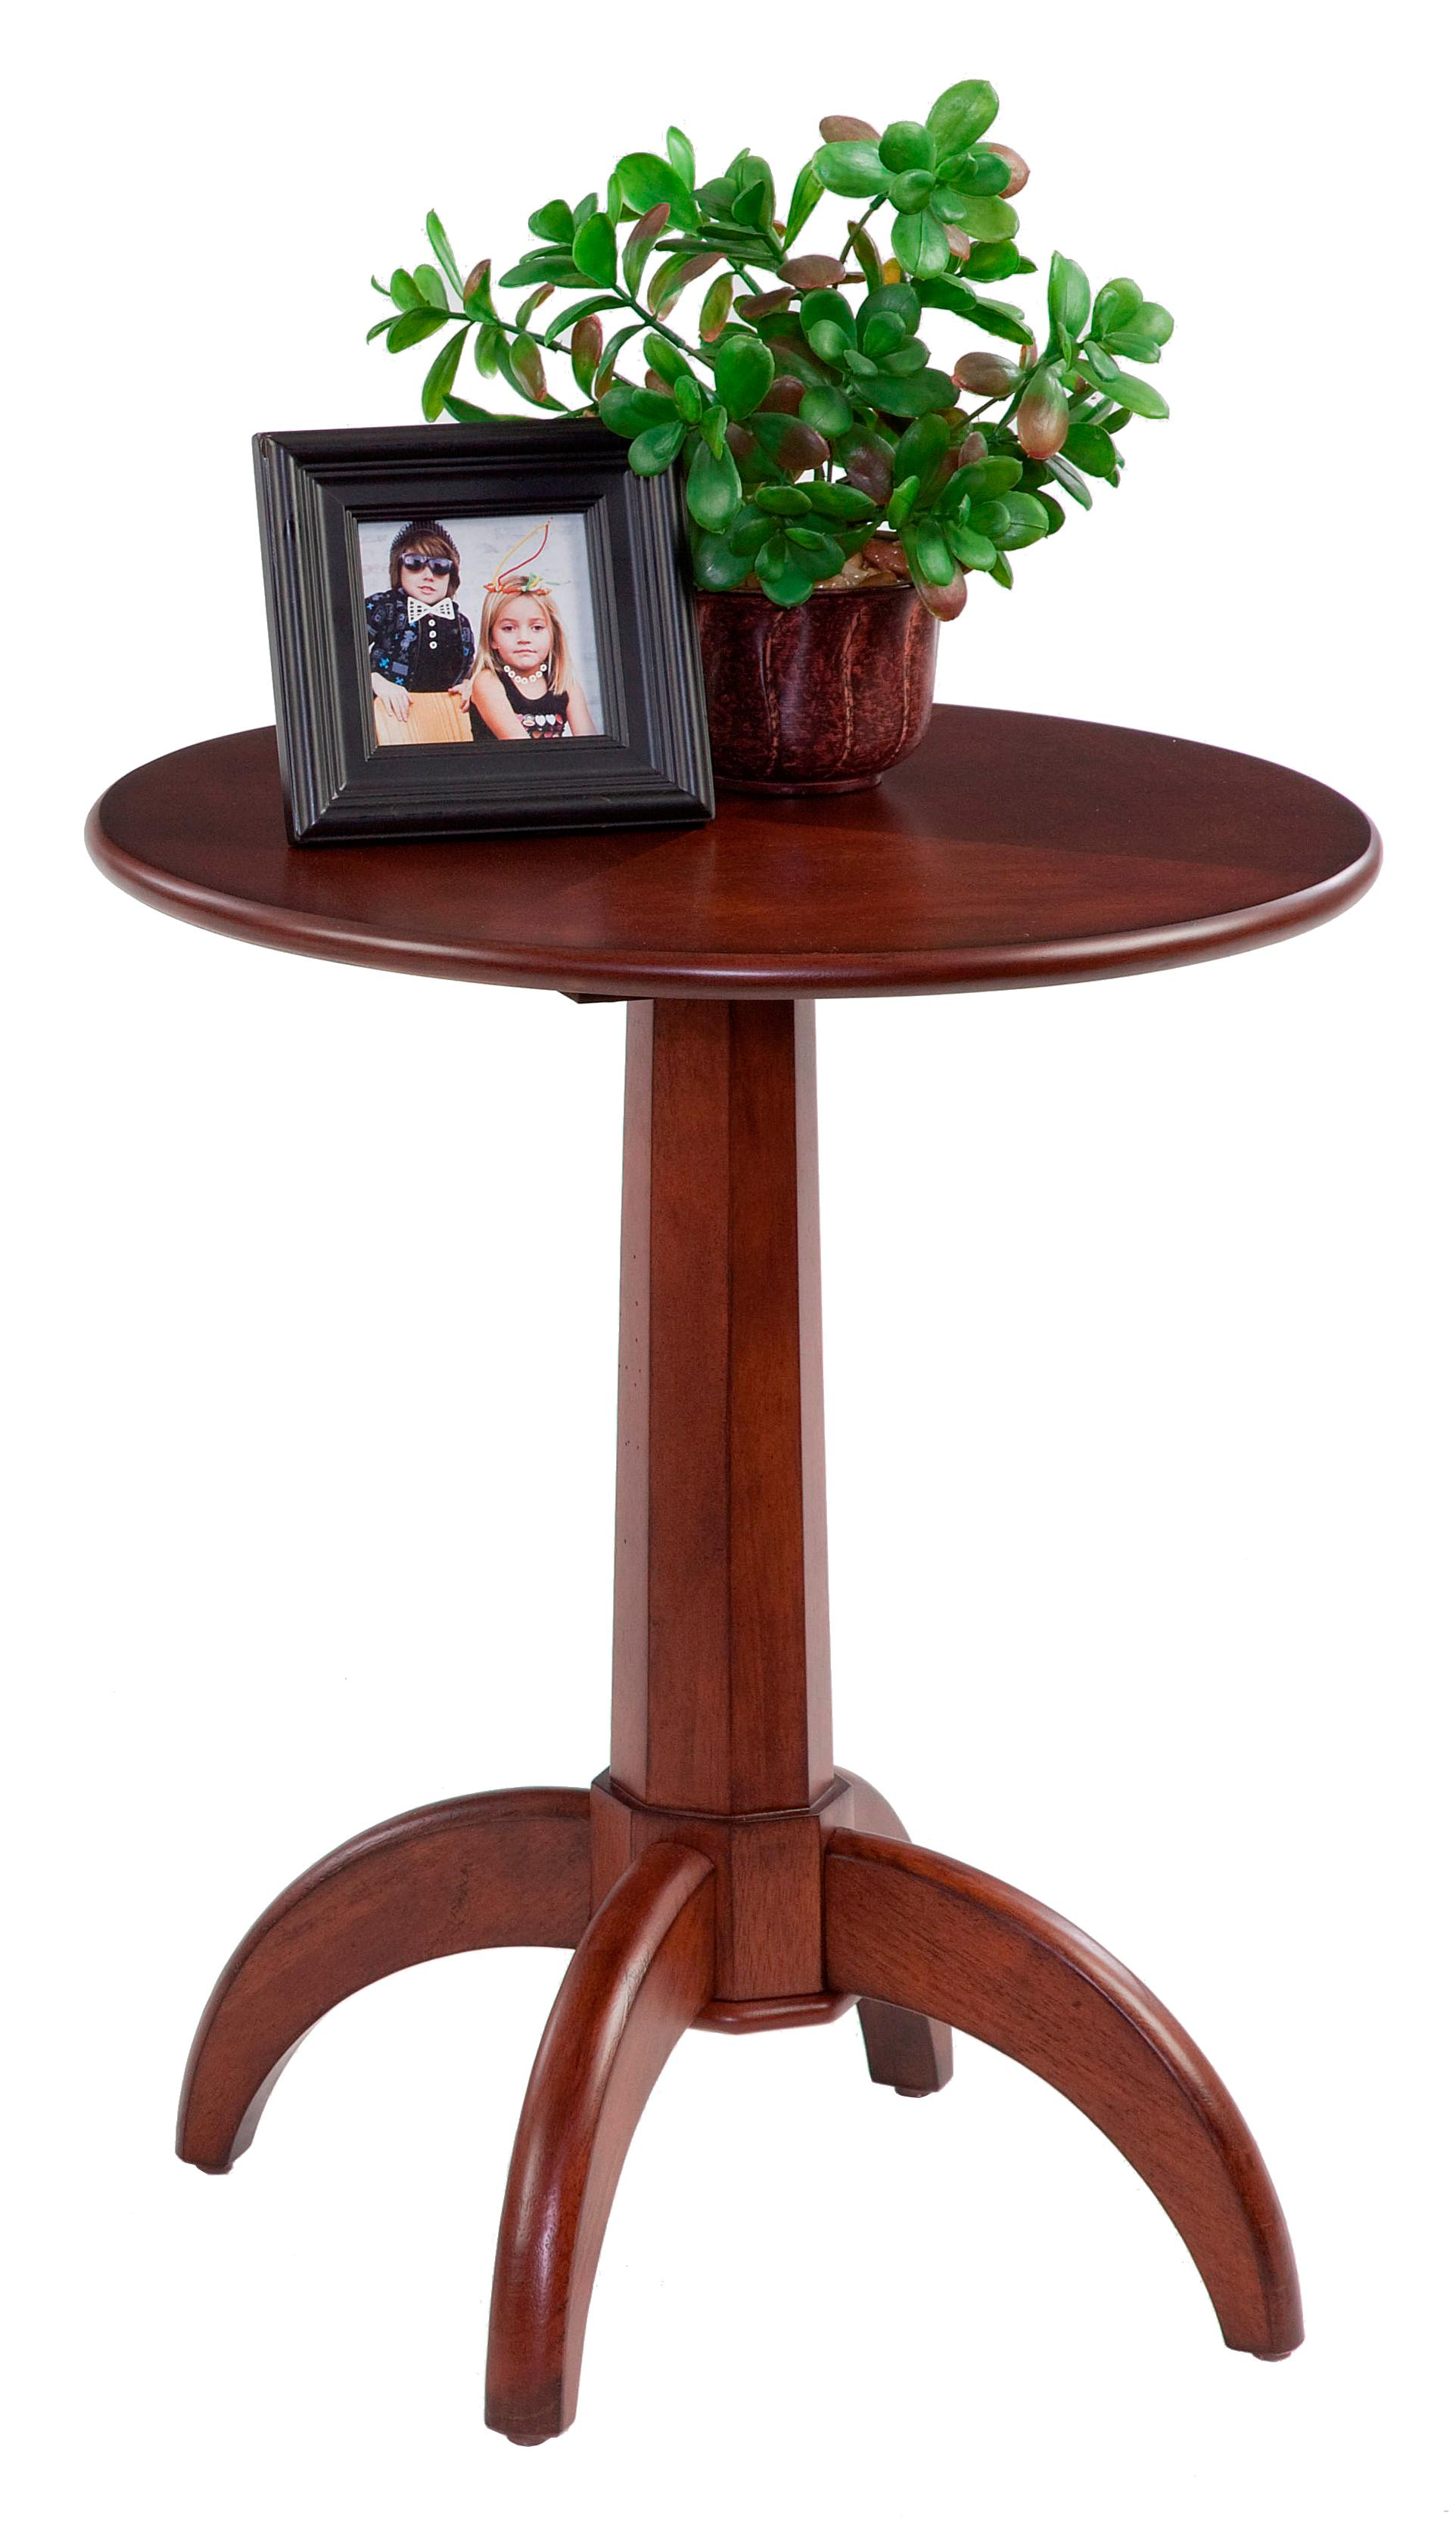 Progressive Furniture Chairsides Chairside Table - Item Number: P300-67